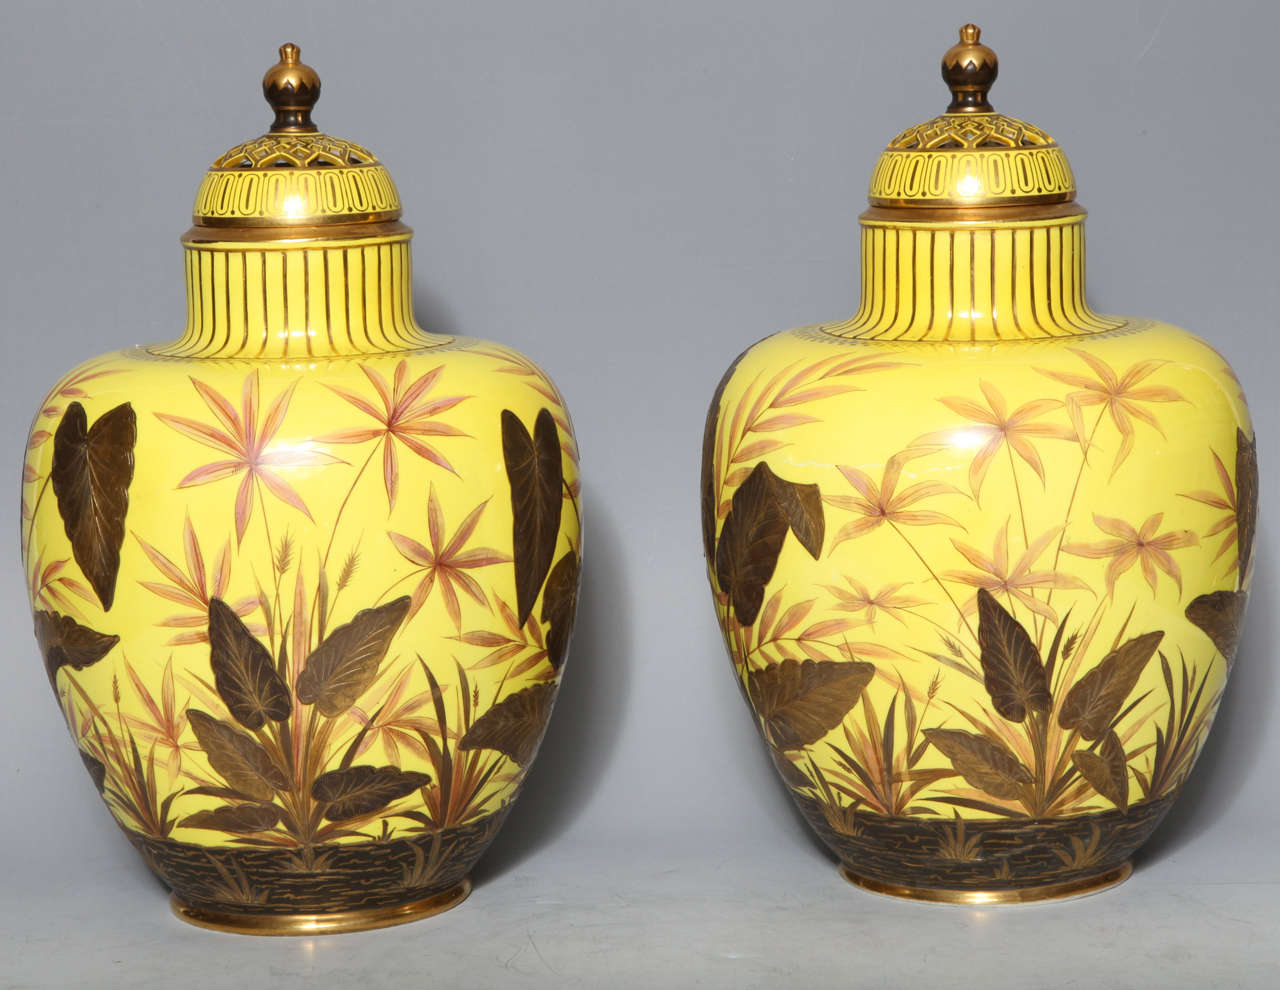 A very unusual pair of antique English Royal Crown Derby porcelain, yellow ground covered potpourri vases, finely painted with multicolored 24-karat gold and enamel. Each finely signed inside the reticulated cover in red.